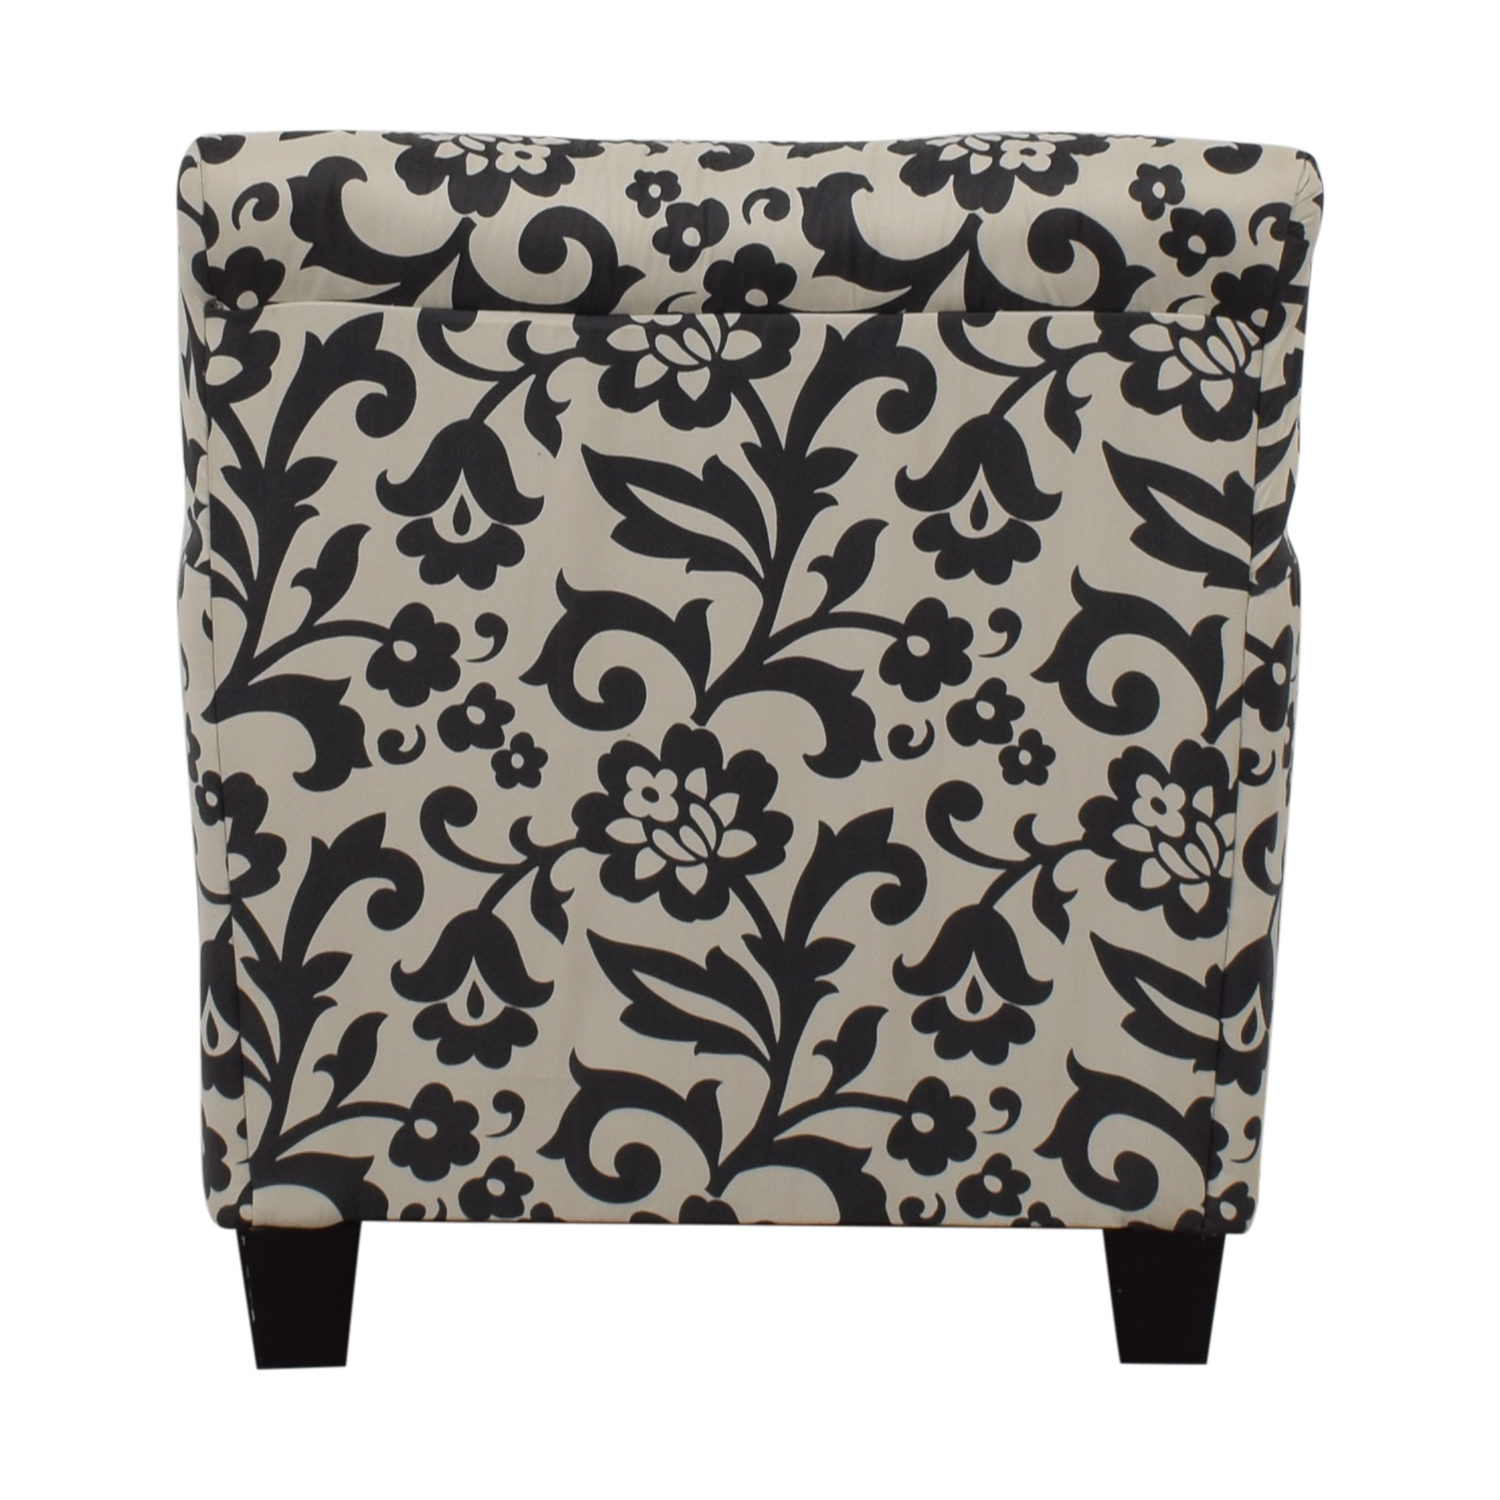 Ashley Furniture Ashley Furniture Floral Armchair on sale